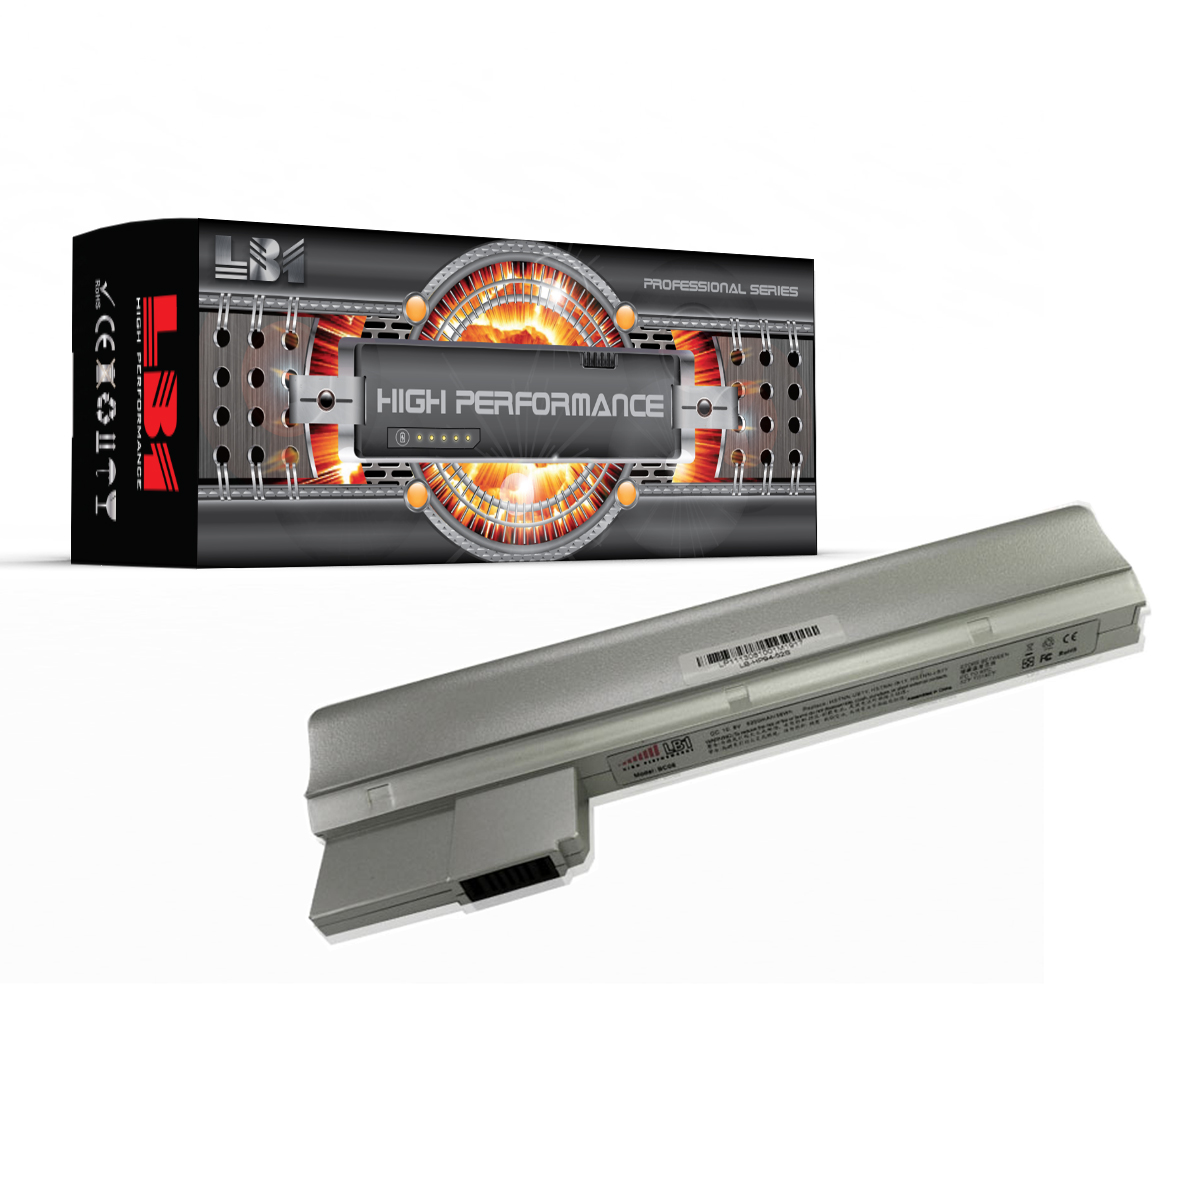 New Laptop battery for HP Mini 210-2012eo for Notebook HP Mini 210-2012eo for Computer HP Mini 210-2012eo [5200mAh 6Cells 10.8V]